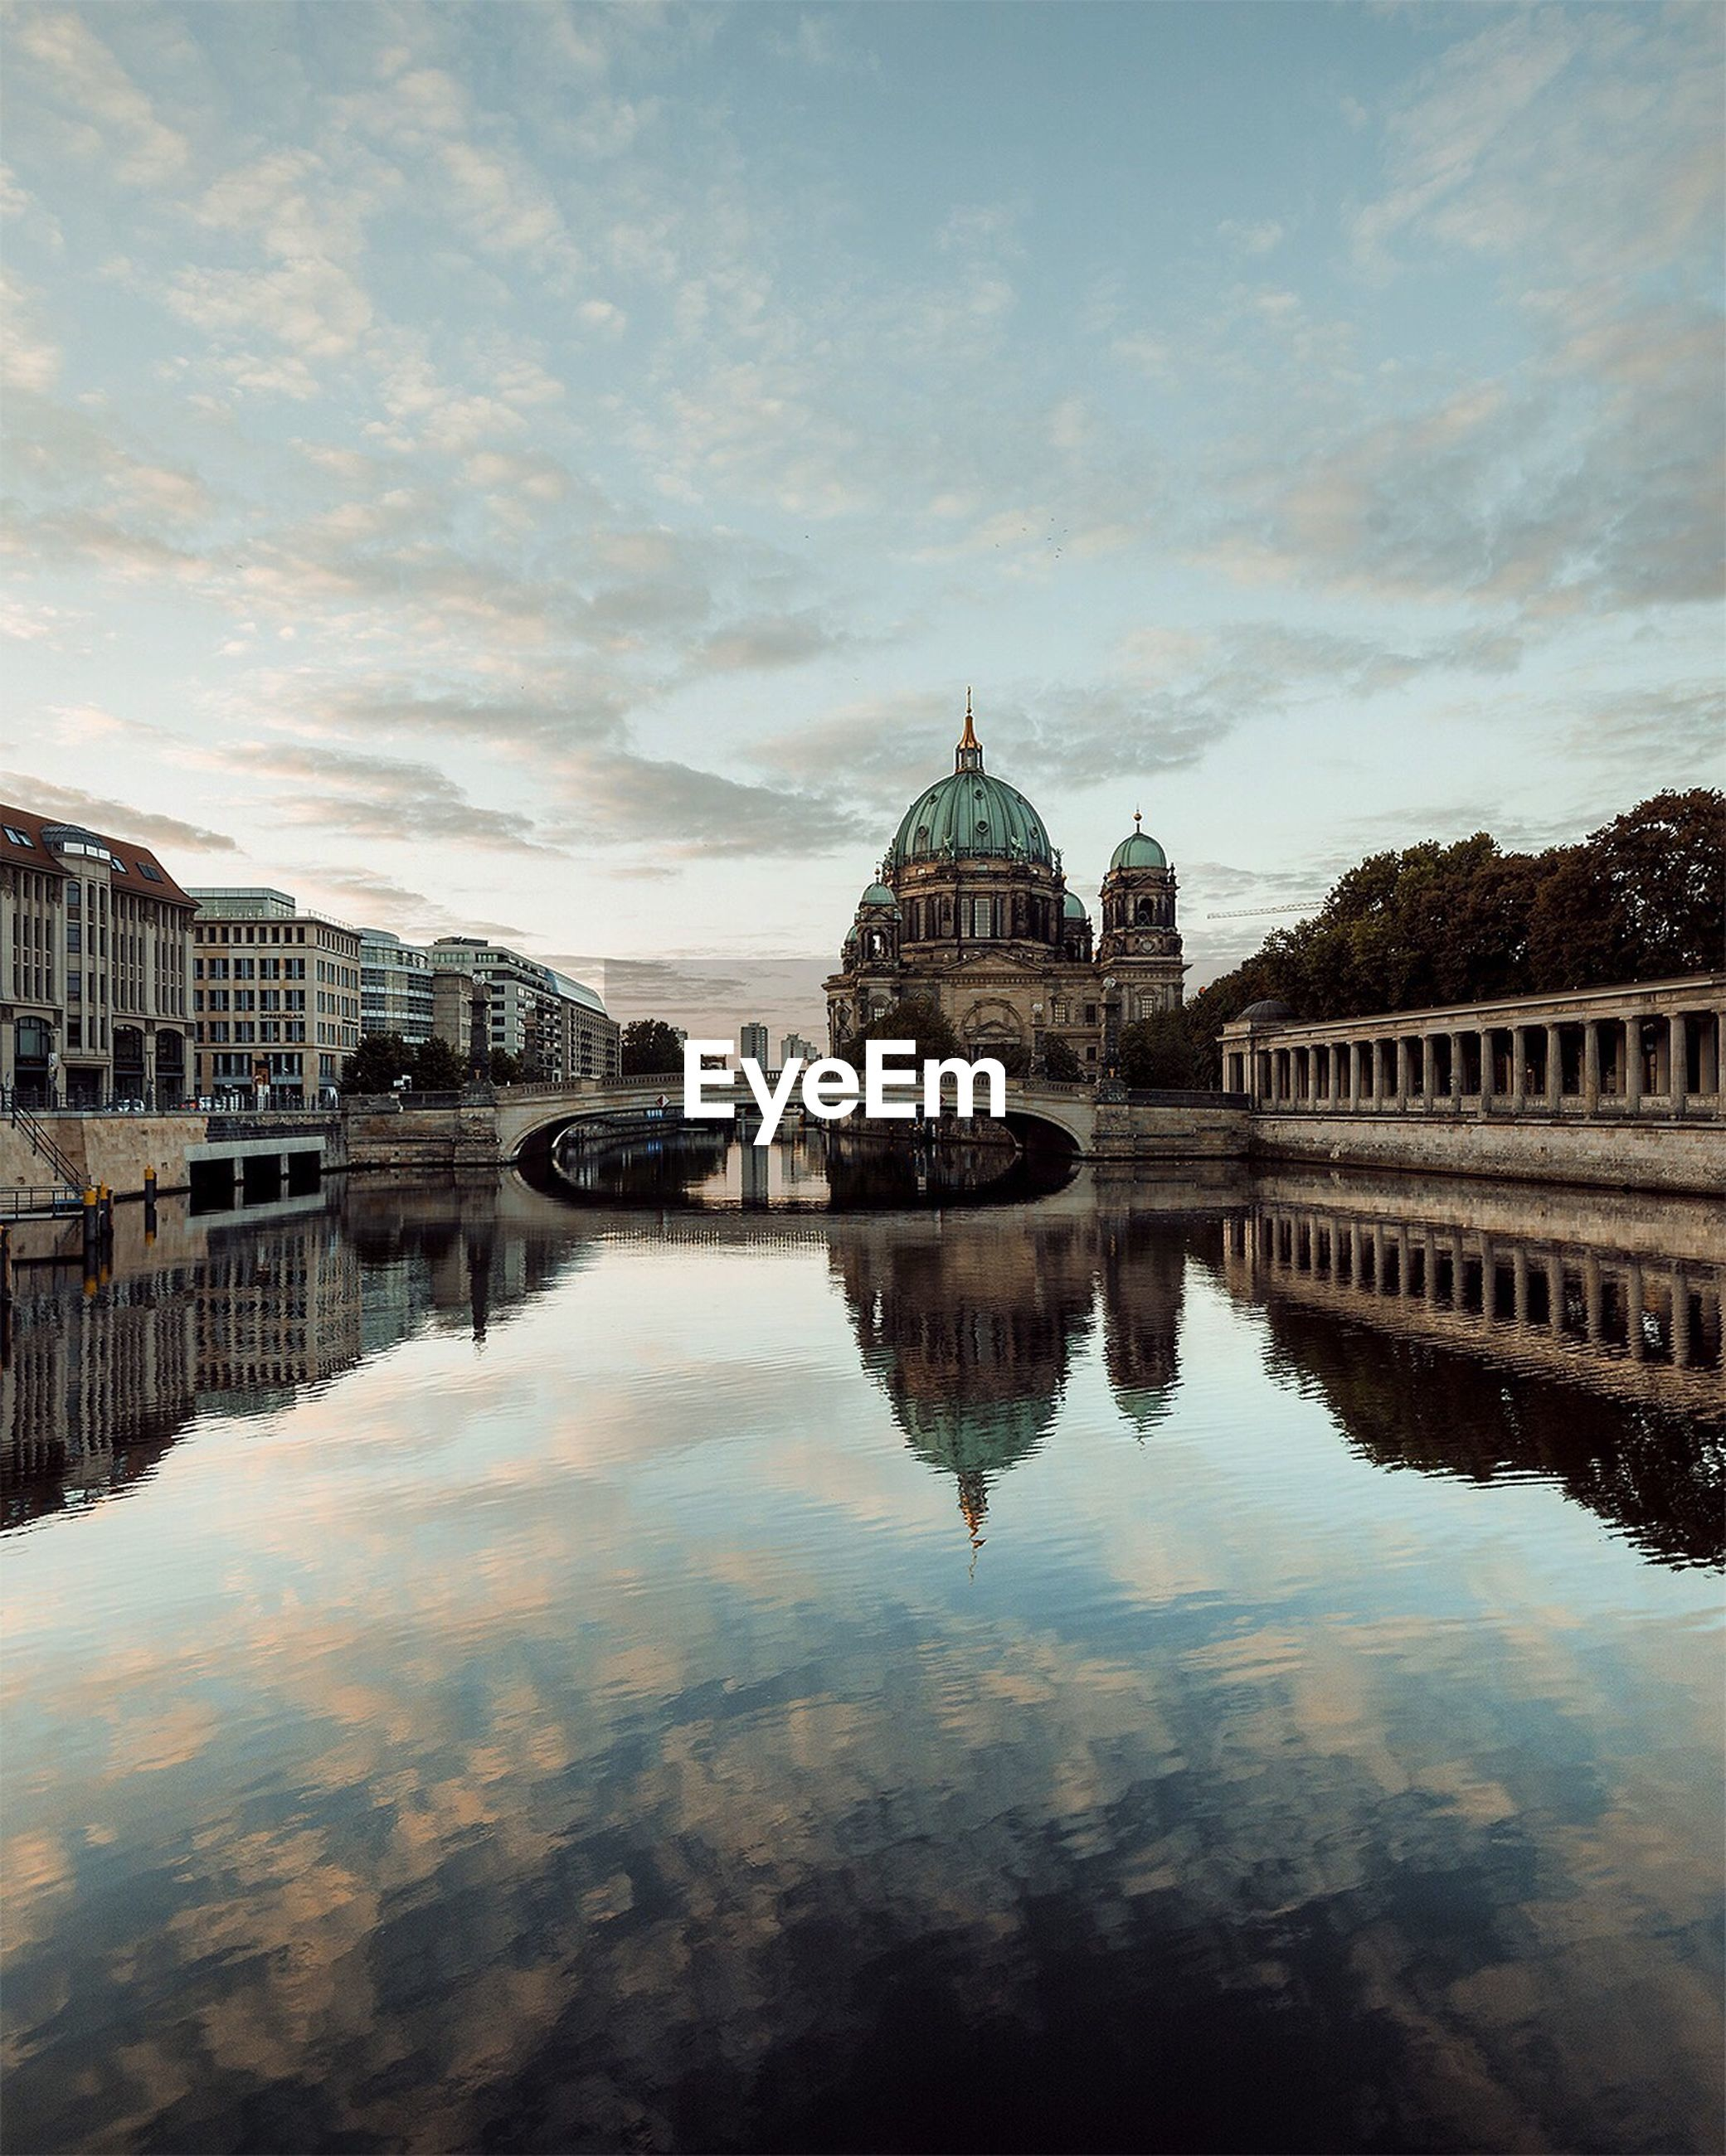 Reflection of berlin cathedral and bridge on canal during sunset